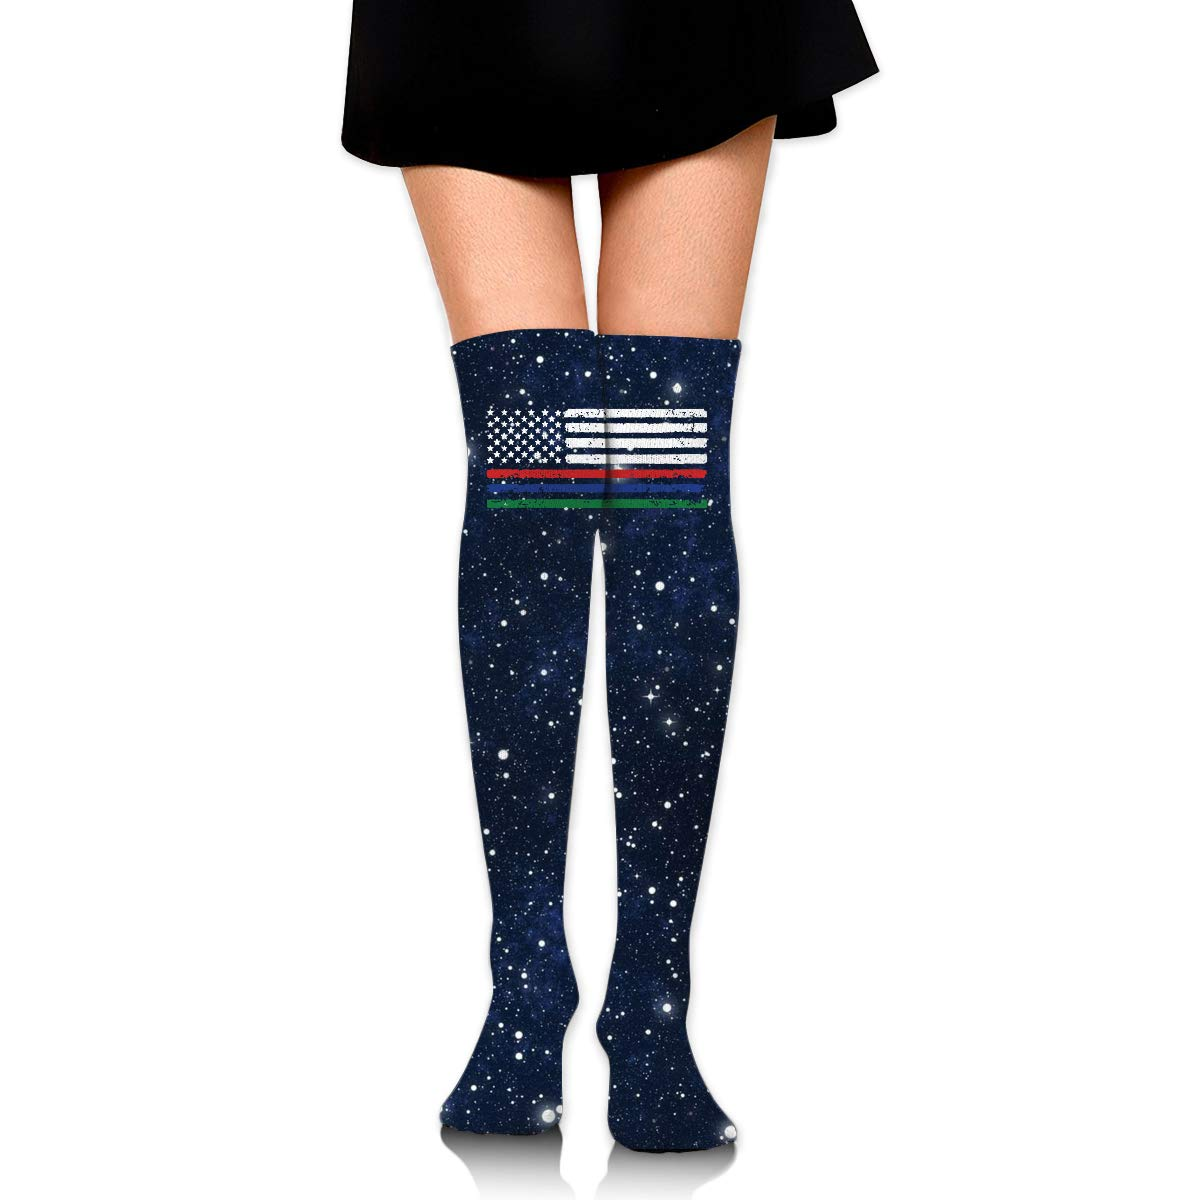 Girls Womens Thin Red Blue Green Line American Flag Over Knee Thigh High Stockings Cute Socks One Size